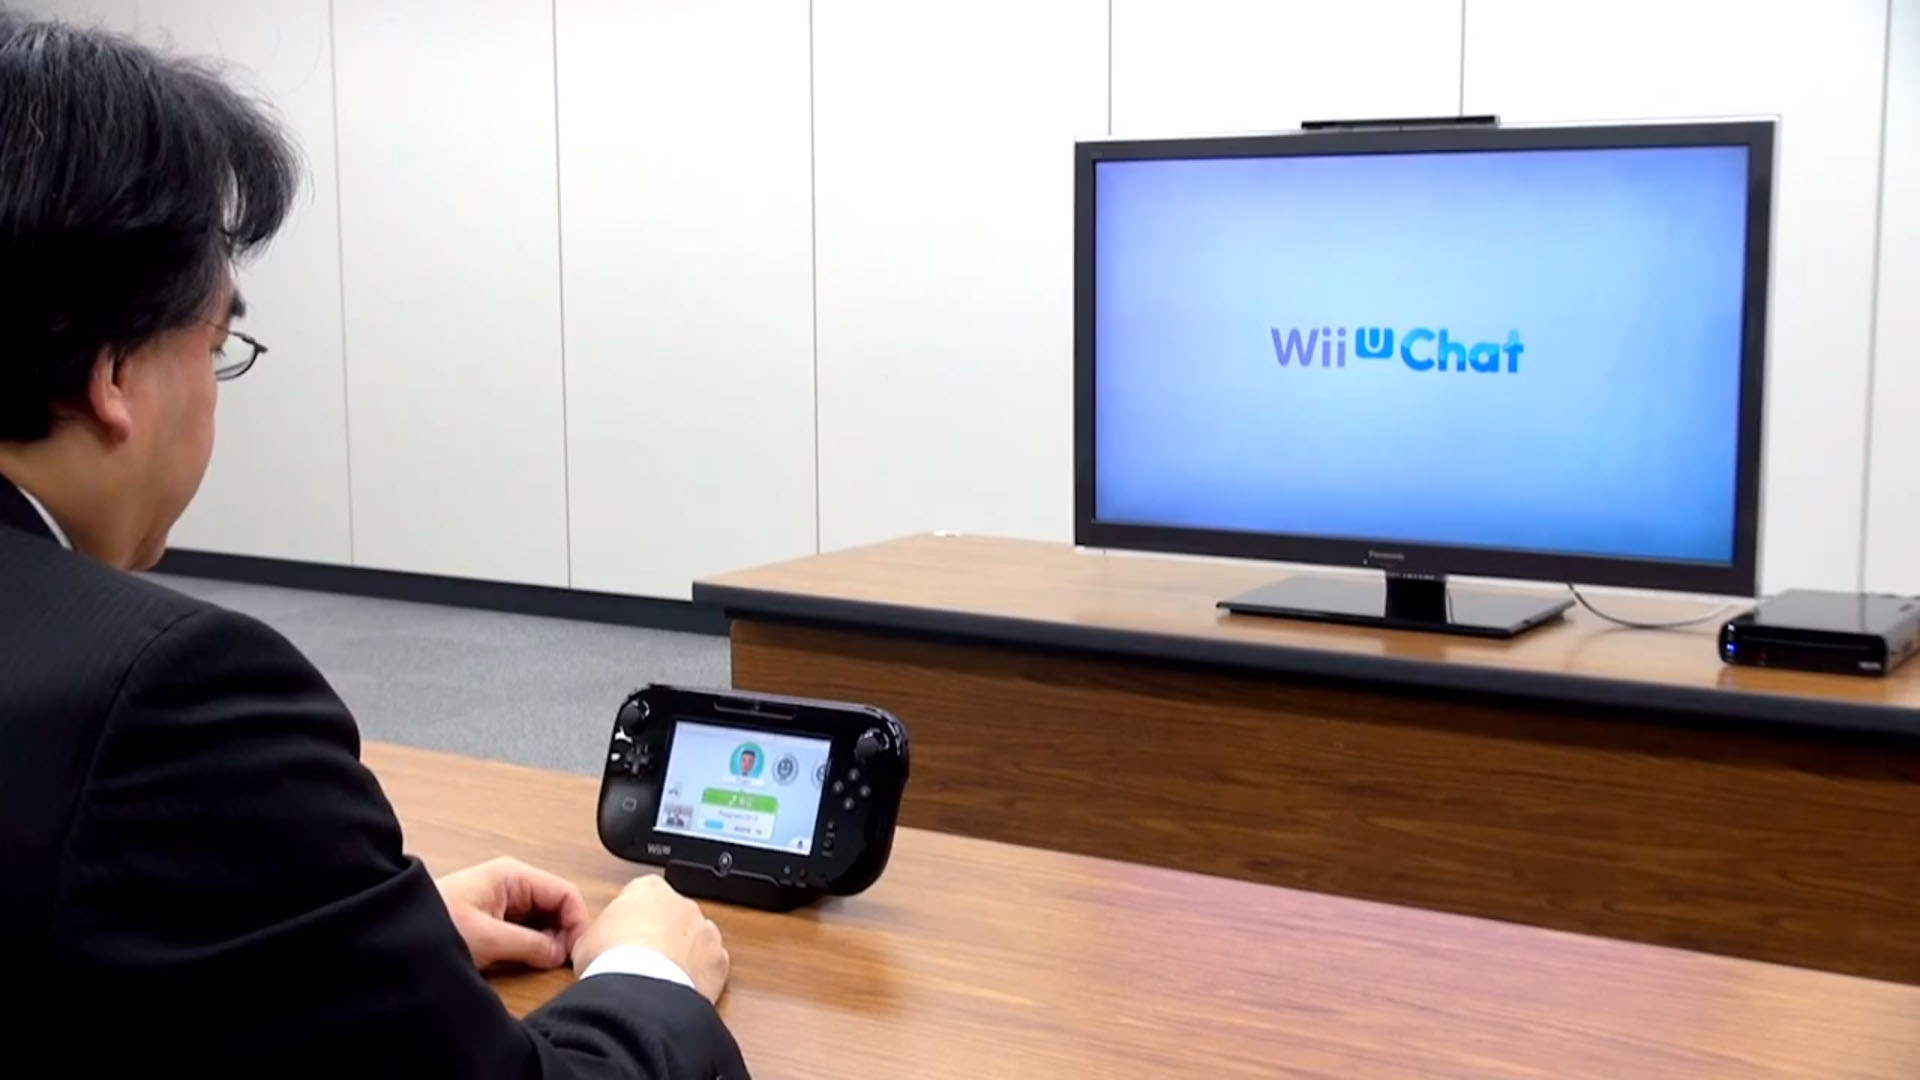 wii chat